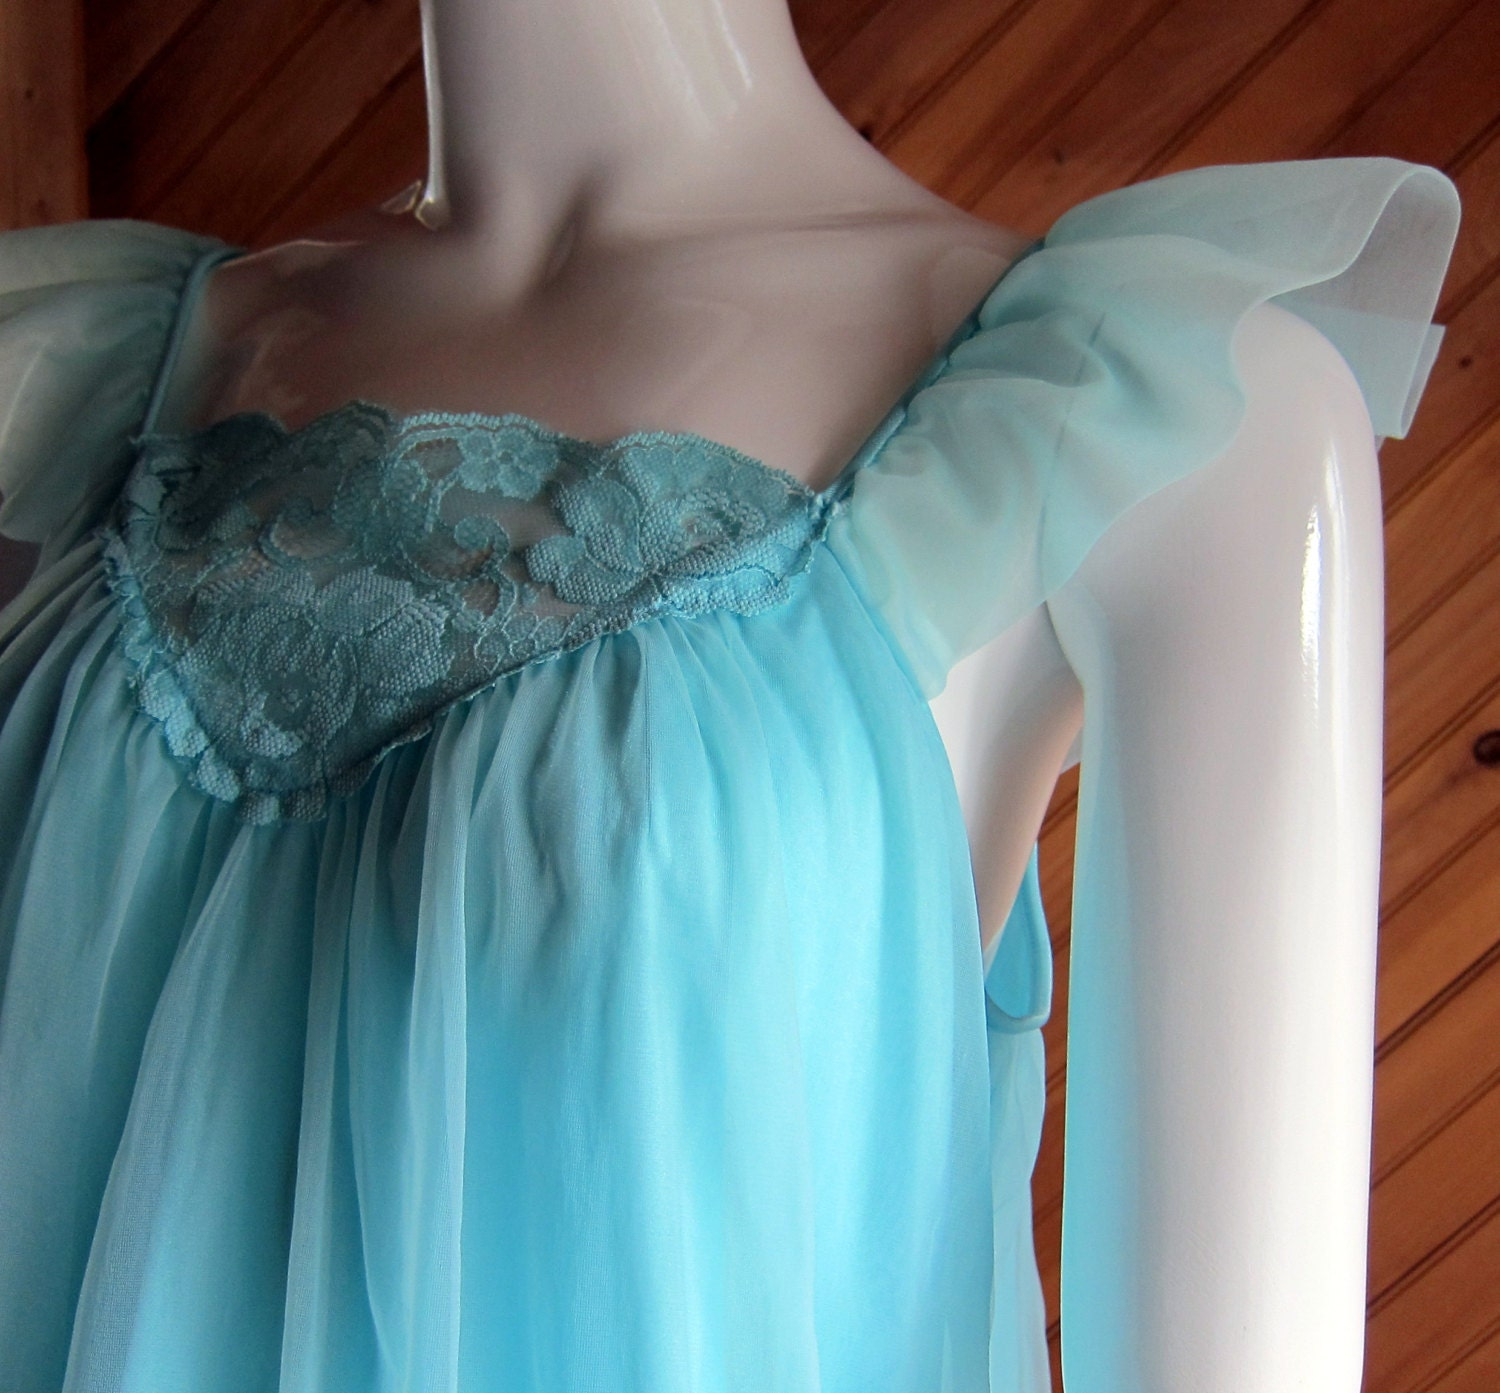 1950s Baby Doll Nightie Nightgown Aqua Vintage Lingerie